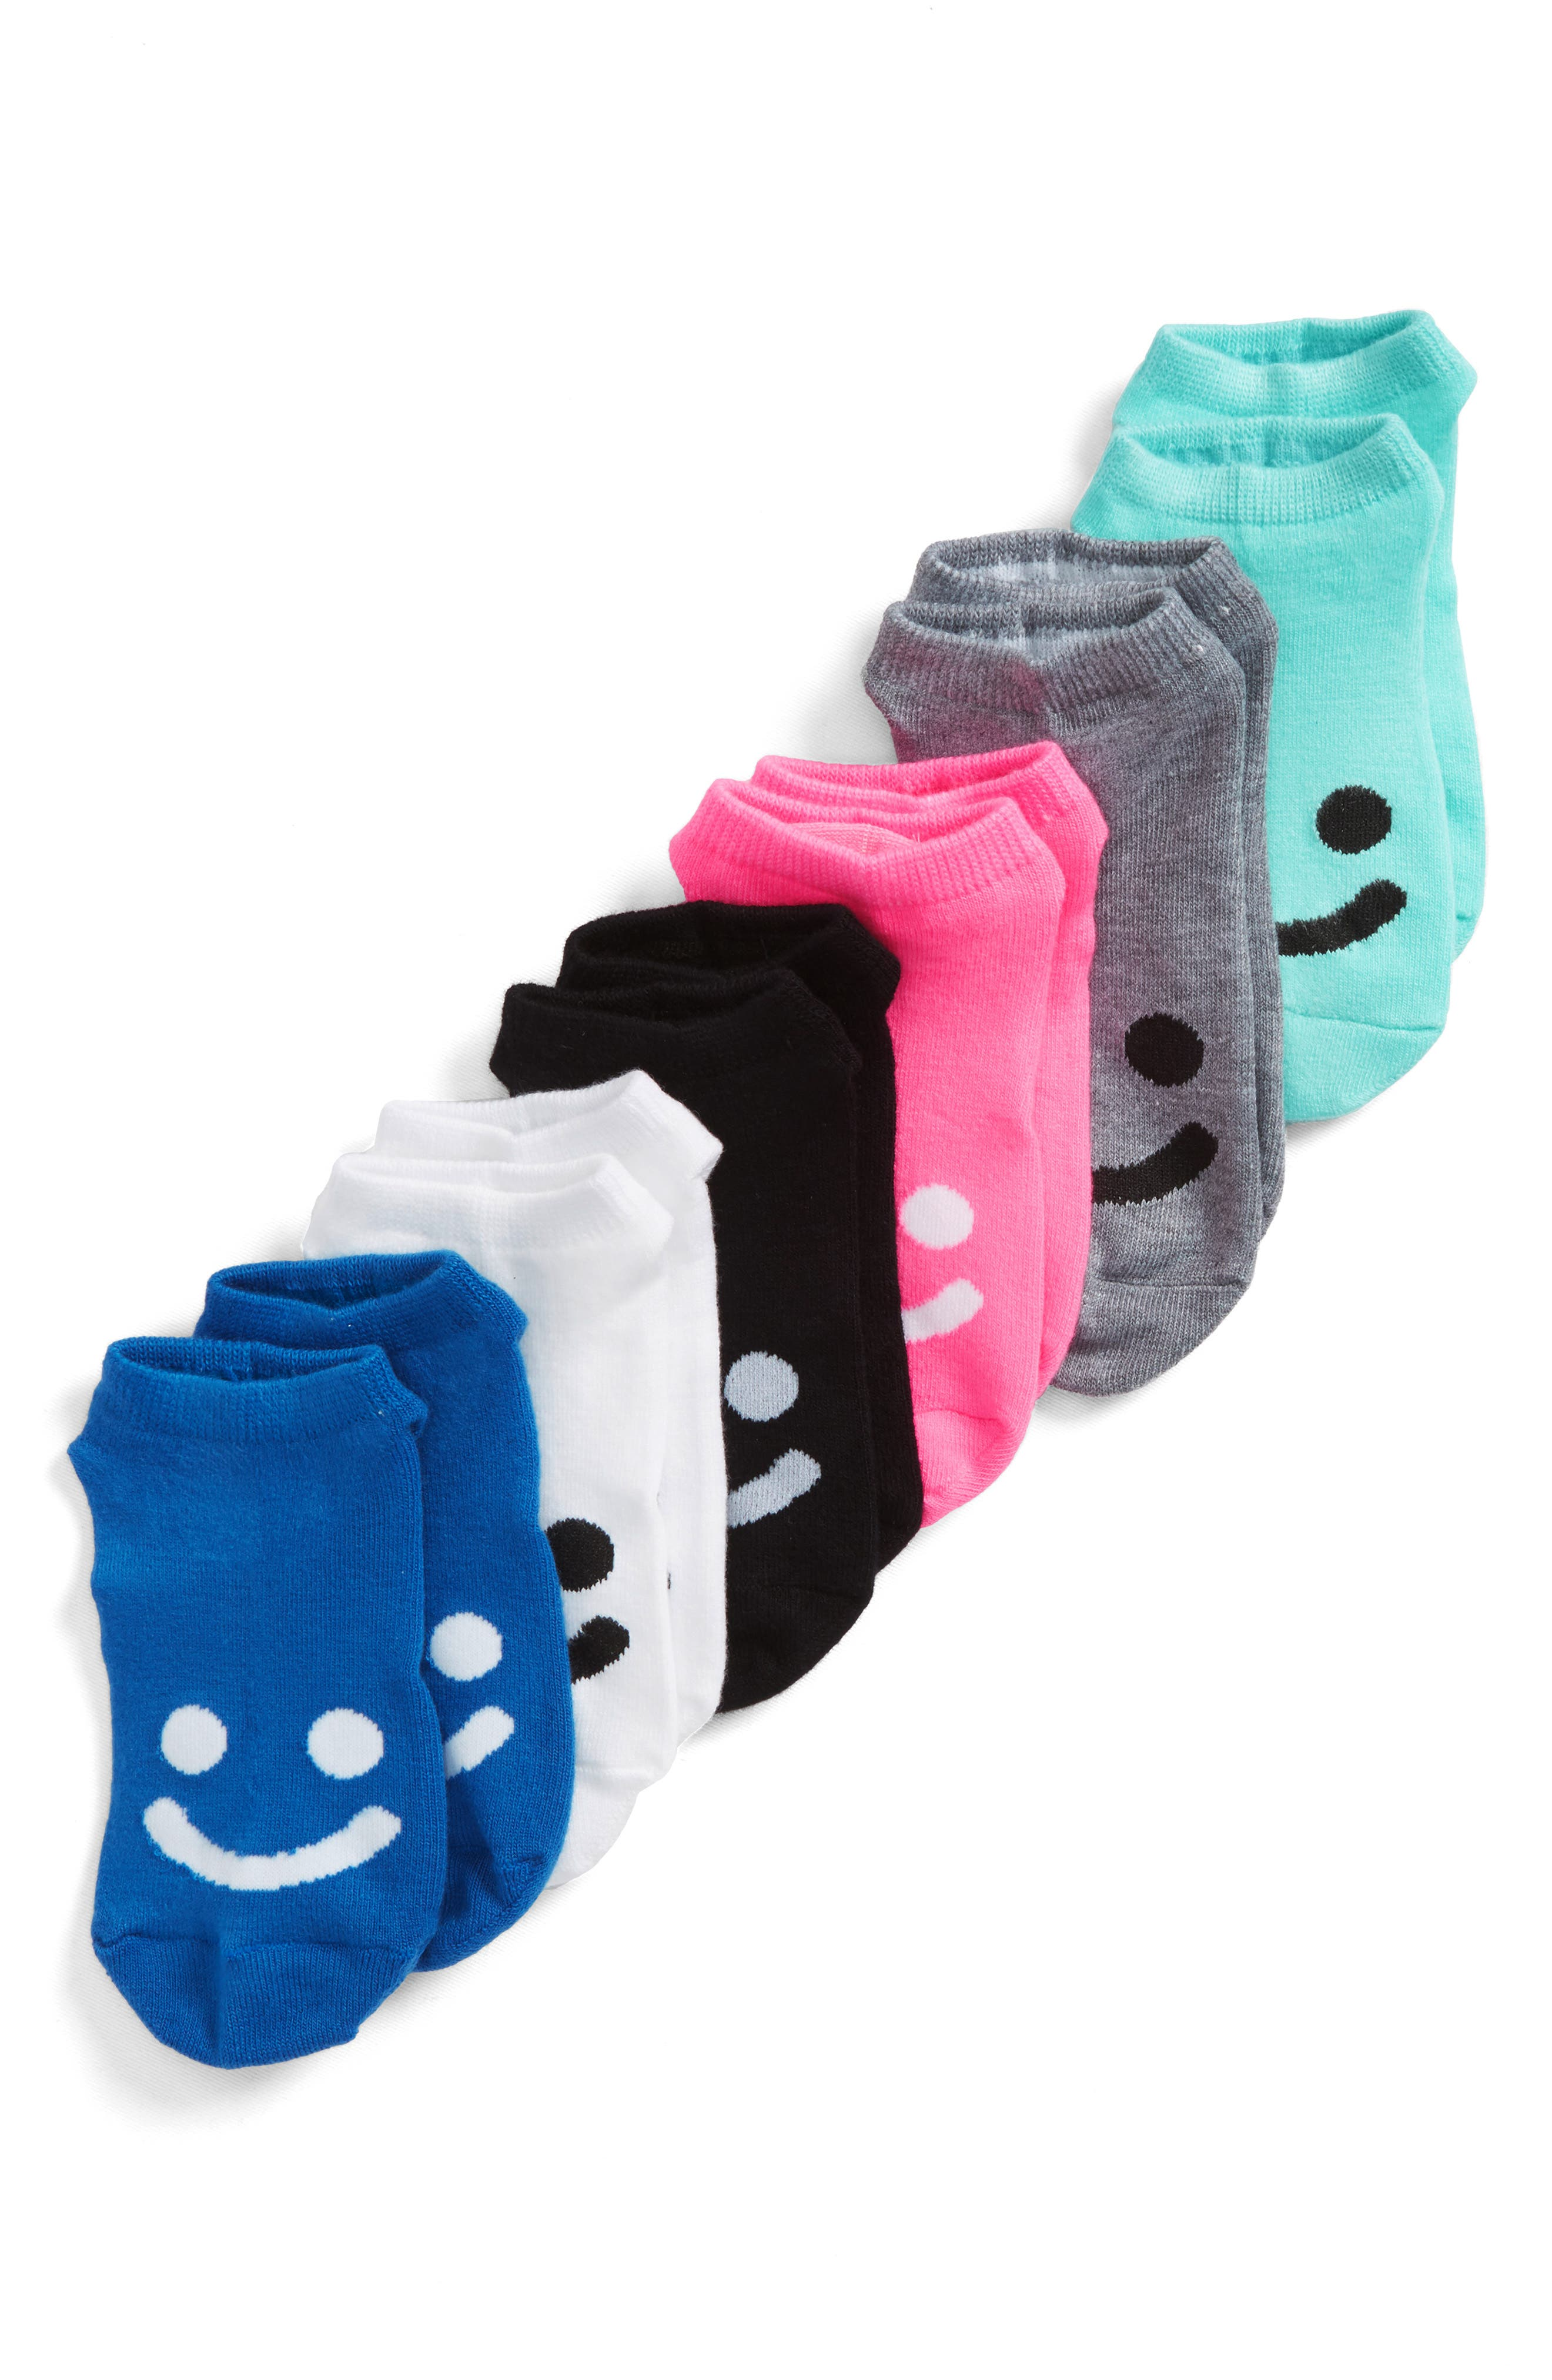 6-Pack All Smiles No-Show Socks,                             Main thumbnail 1, color,                             Blue